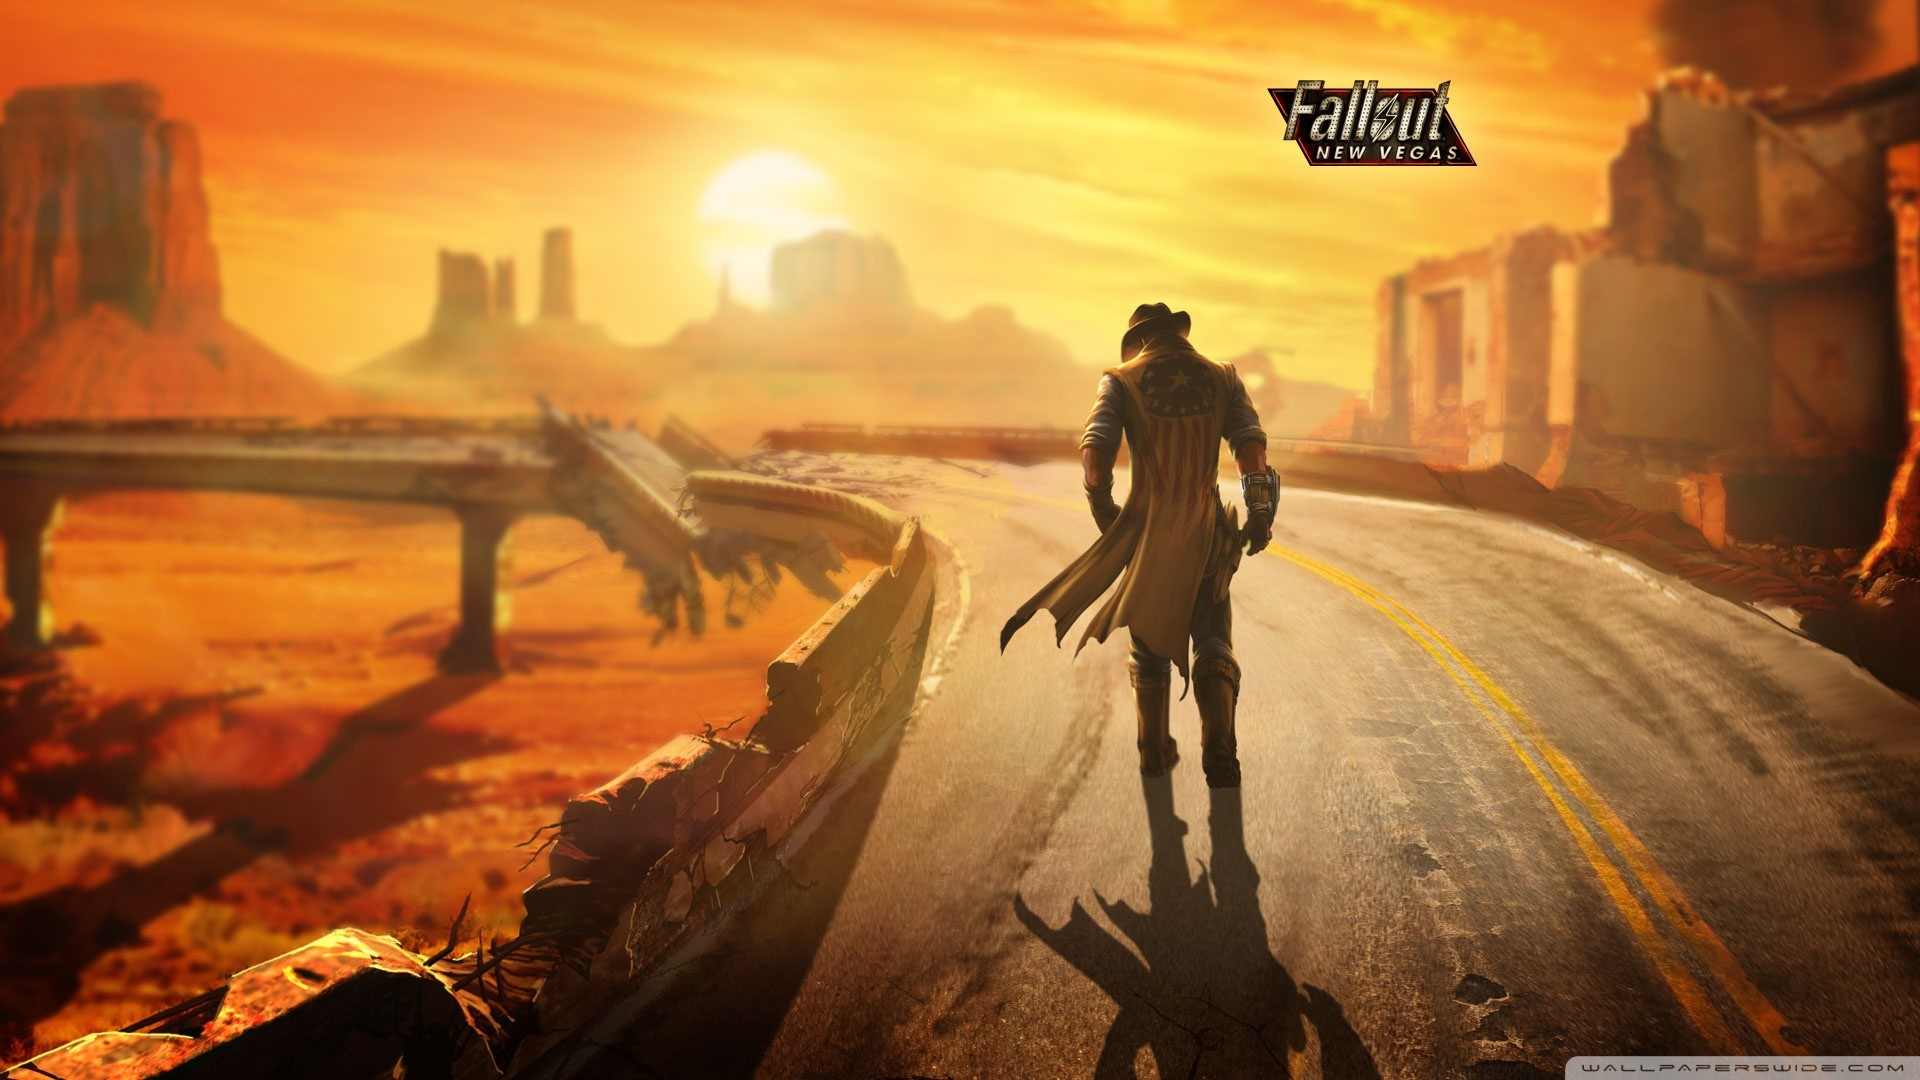 Fallout New Vegas Lonesome Road Wallpaper Fallout, New .